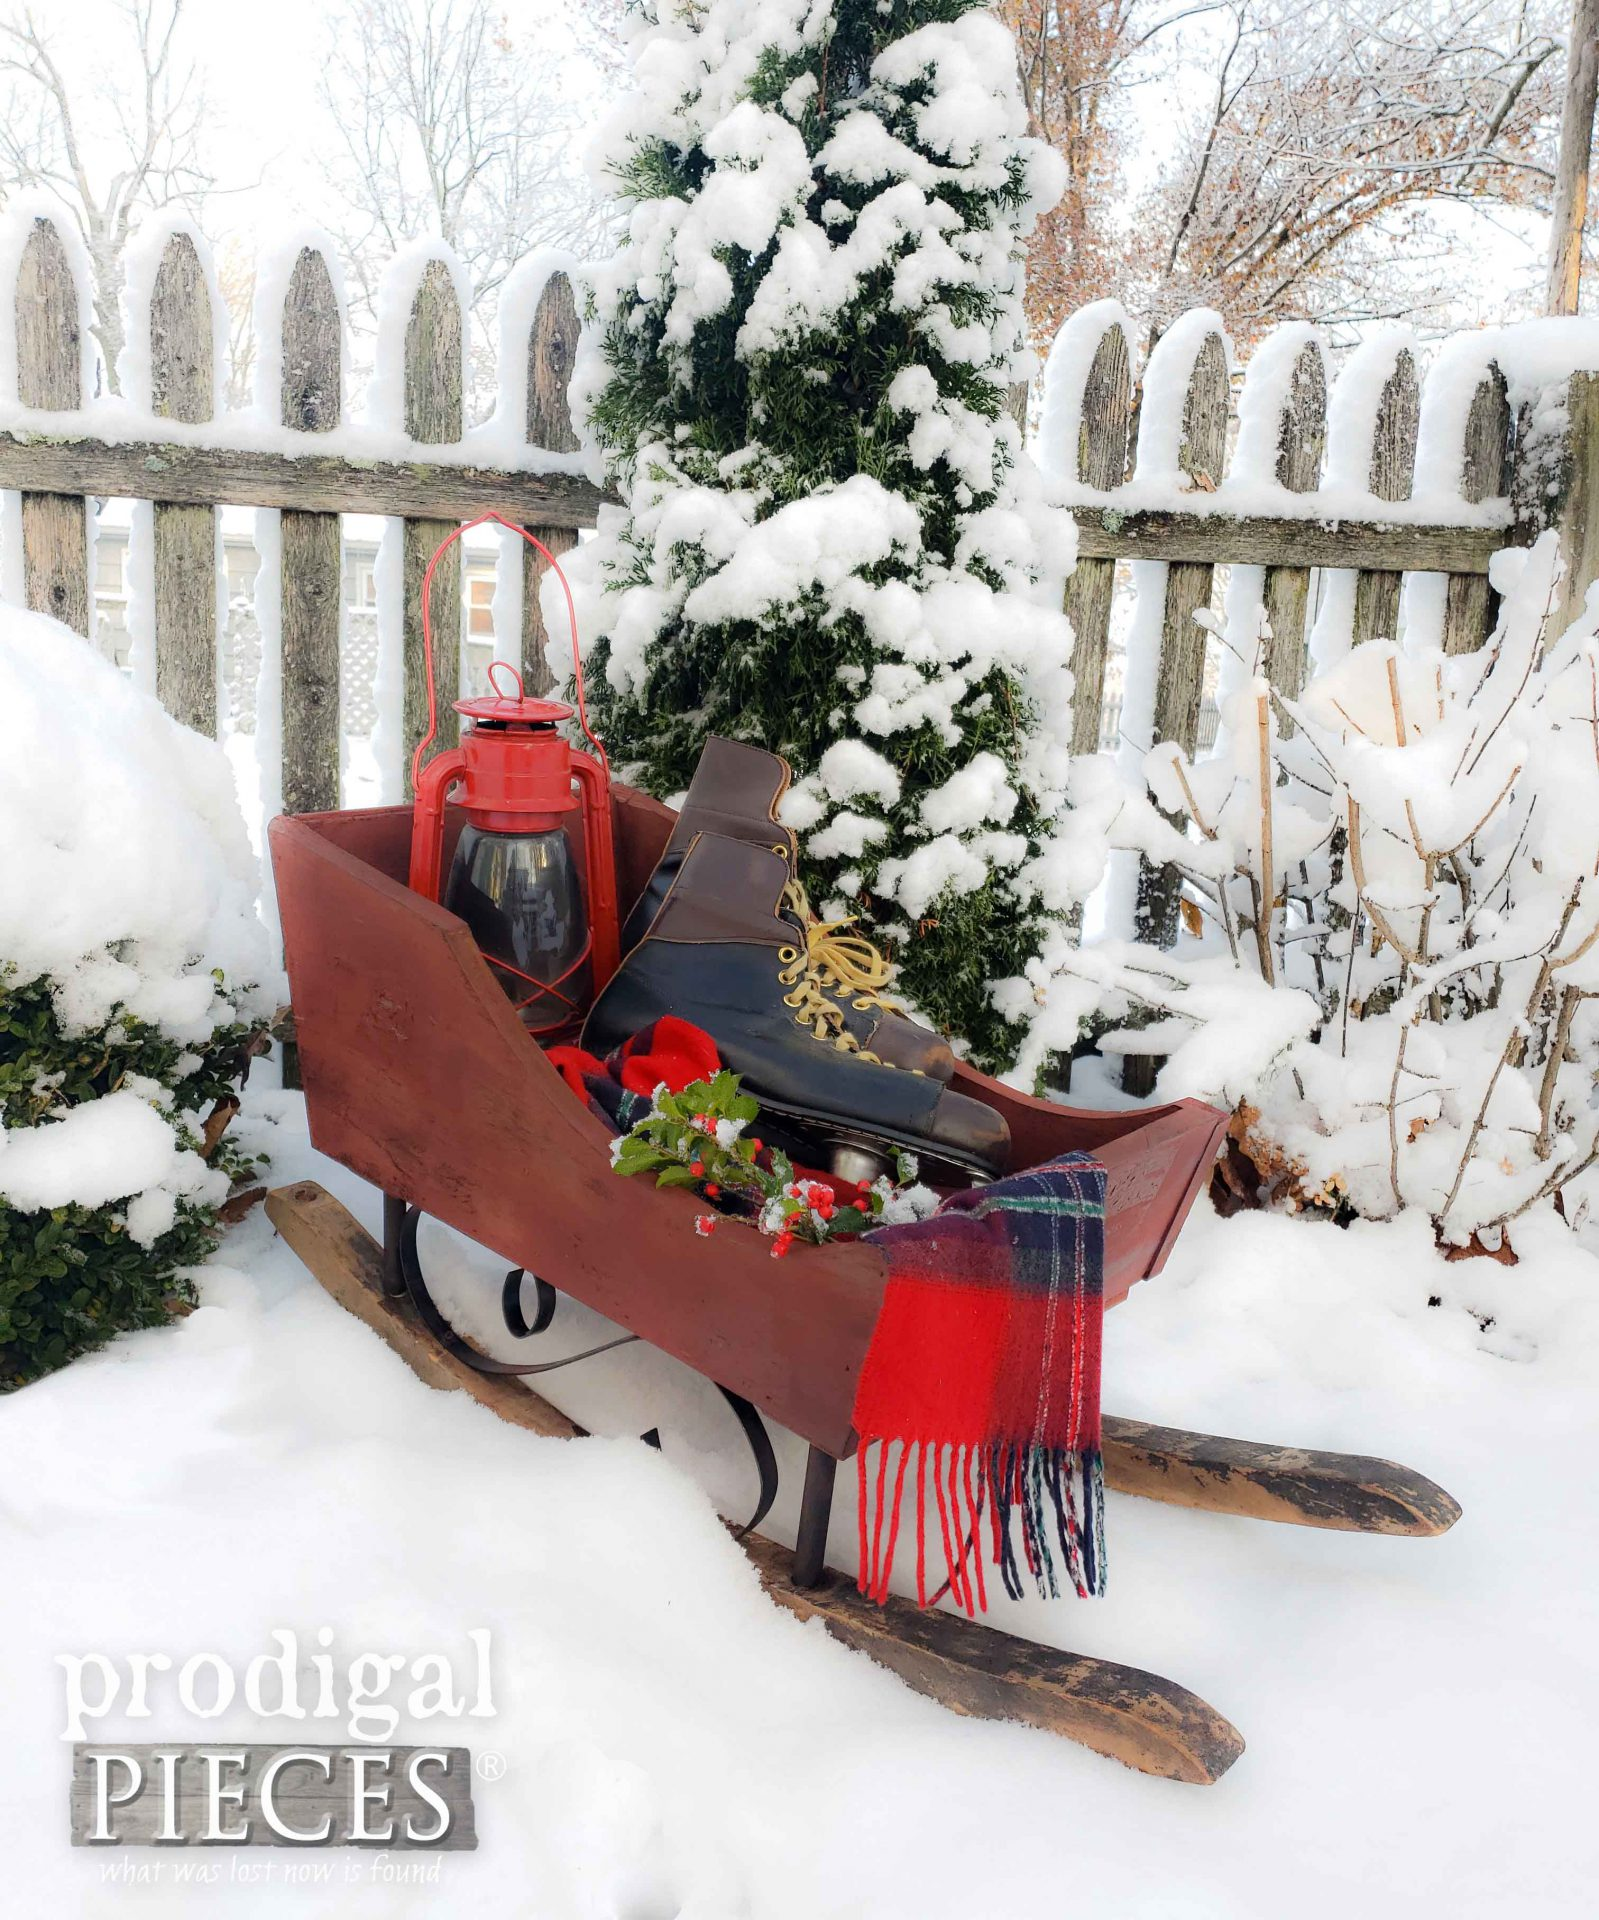 Snowy Upcycled Farmhouse Christmas Sleigh by Larissa of Prodigal Pieces | prodigalpieces.com #prodigalpieces #diy #home #homedecor #farmhouse #christmas